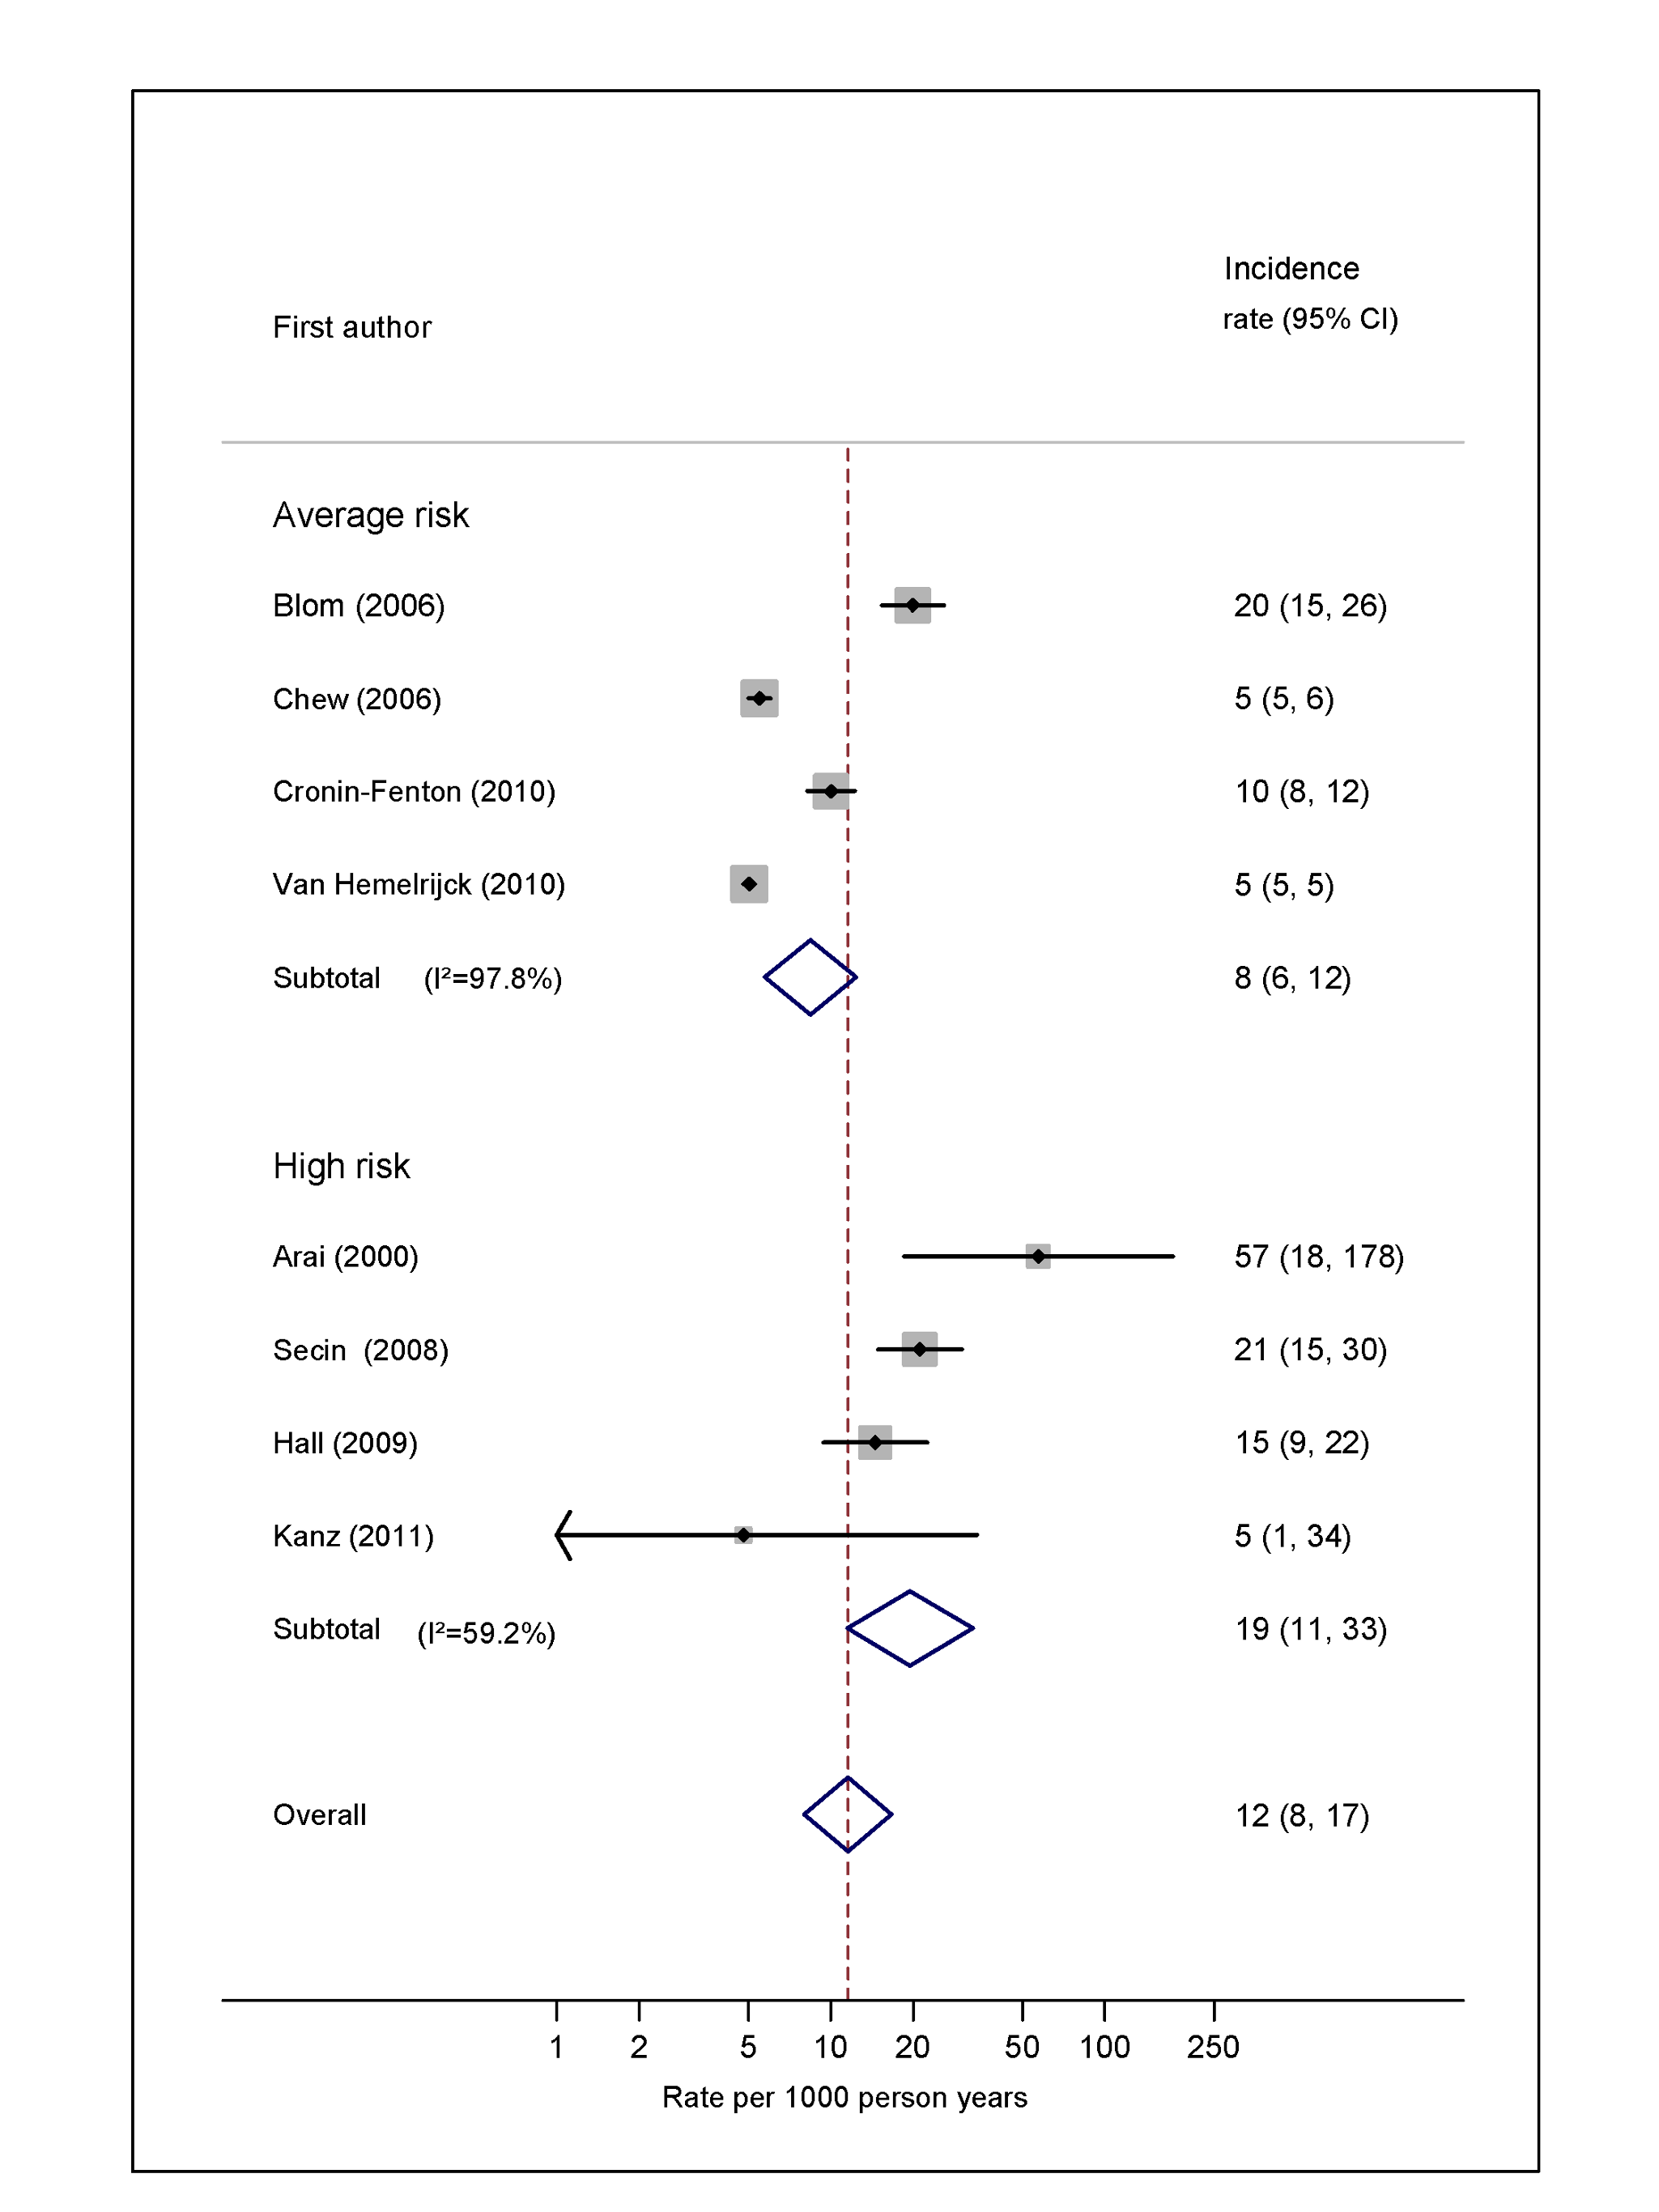 Pooled incidence of venous thromboembolism for prostate cancer.